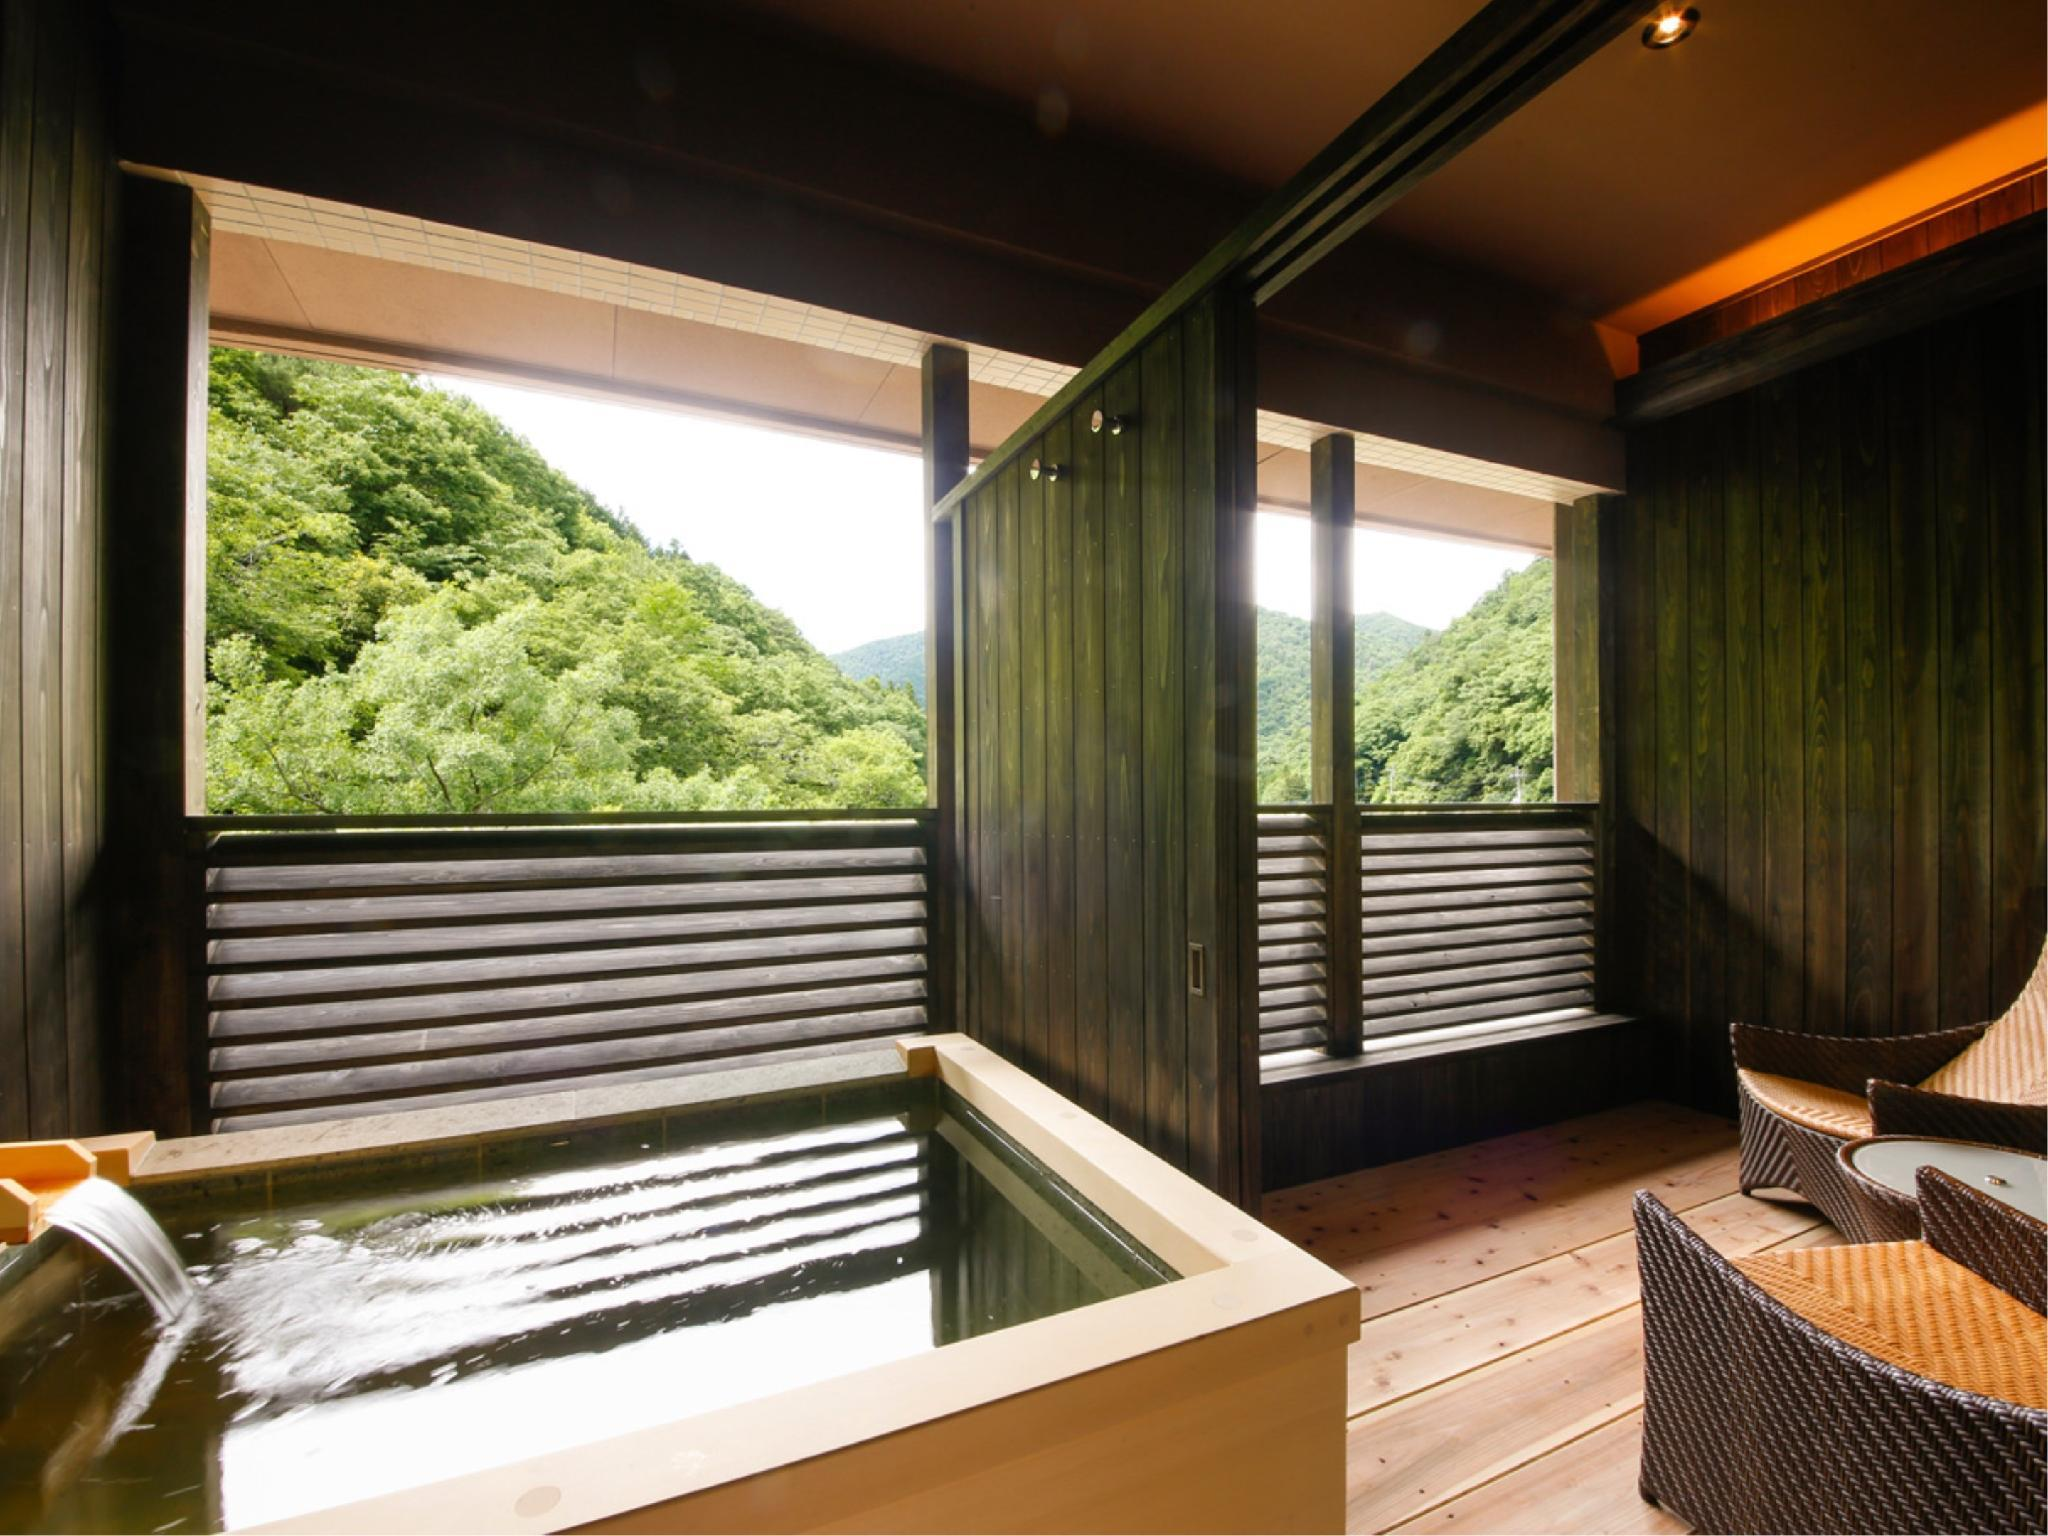 D類型 附專用露天風呂和洋式房 (Japanese/Western-style Room with Open-air Bath (Type D))